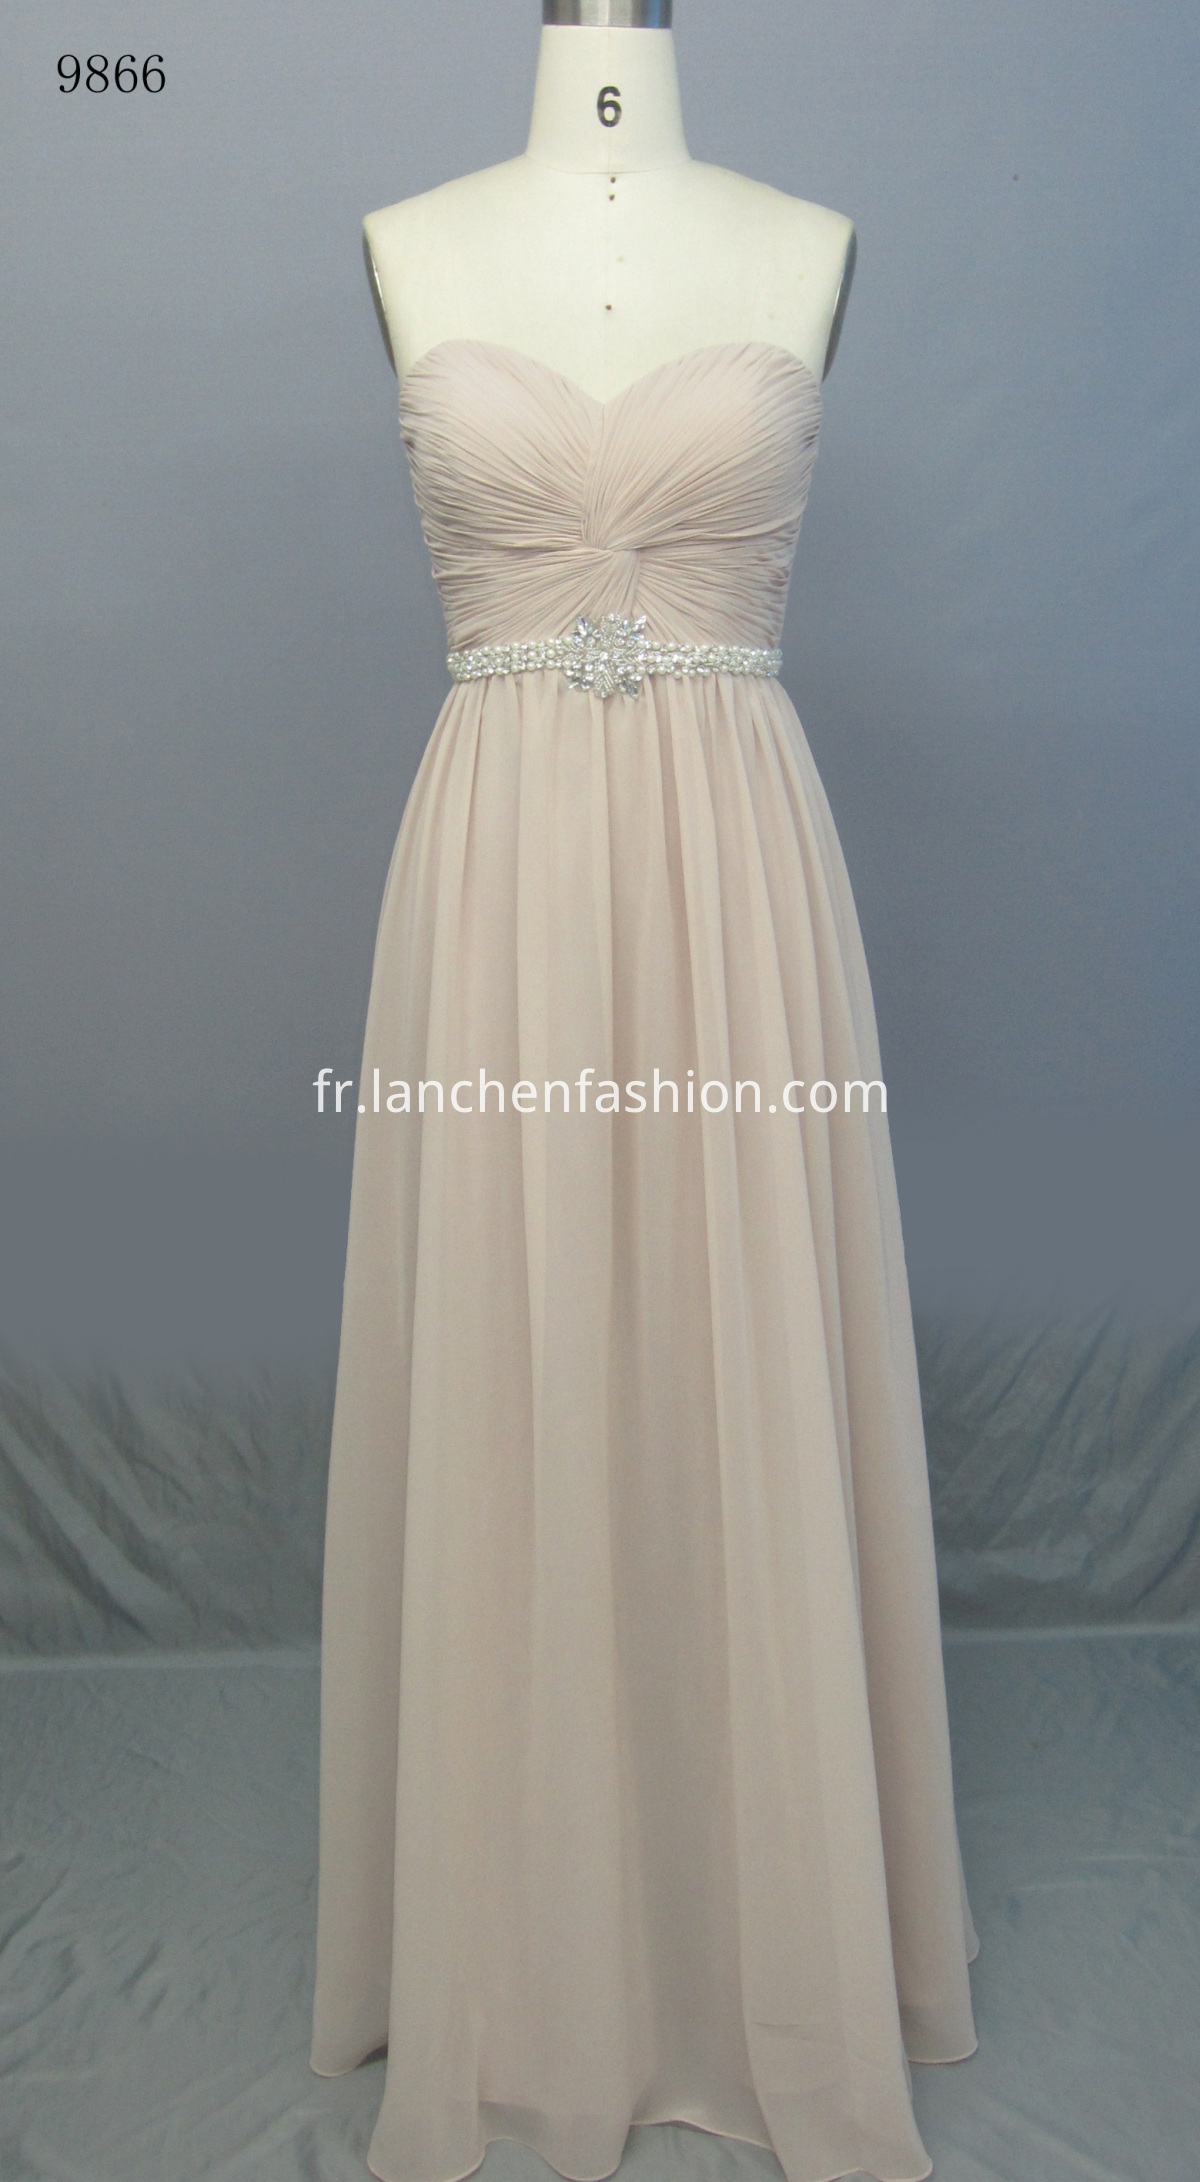 Elegant Maxi Dress KHAKI